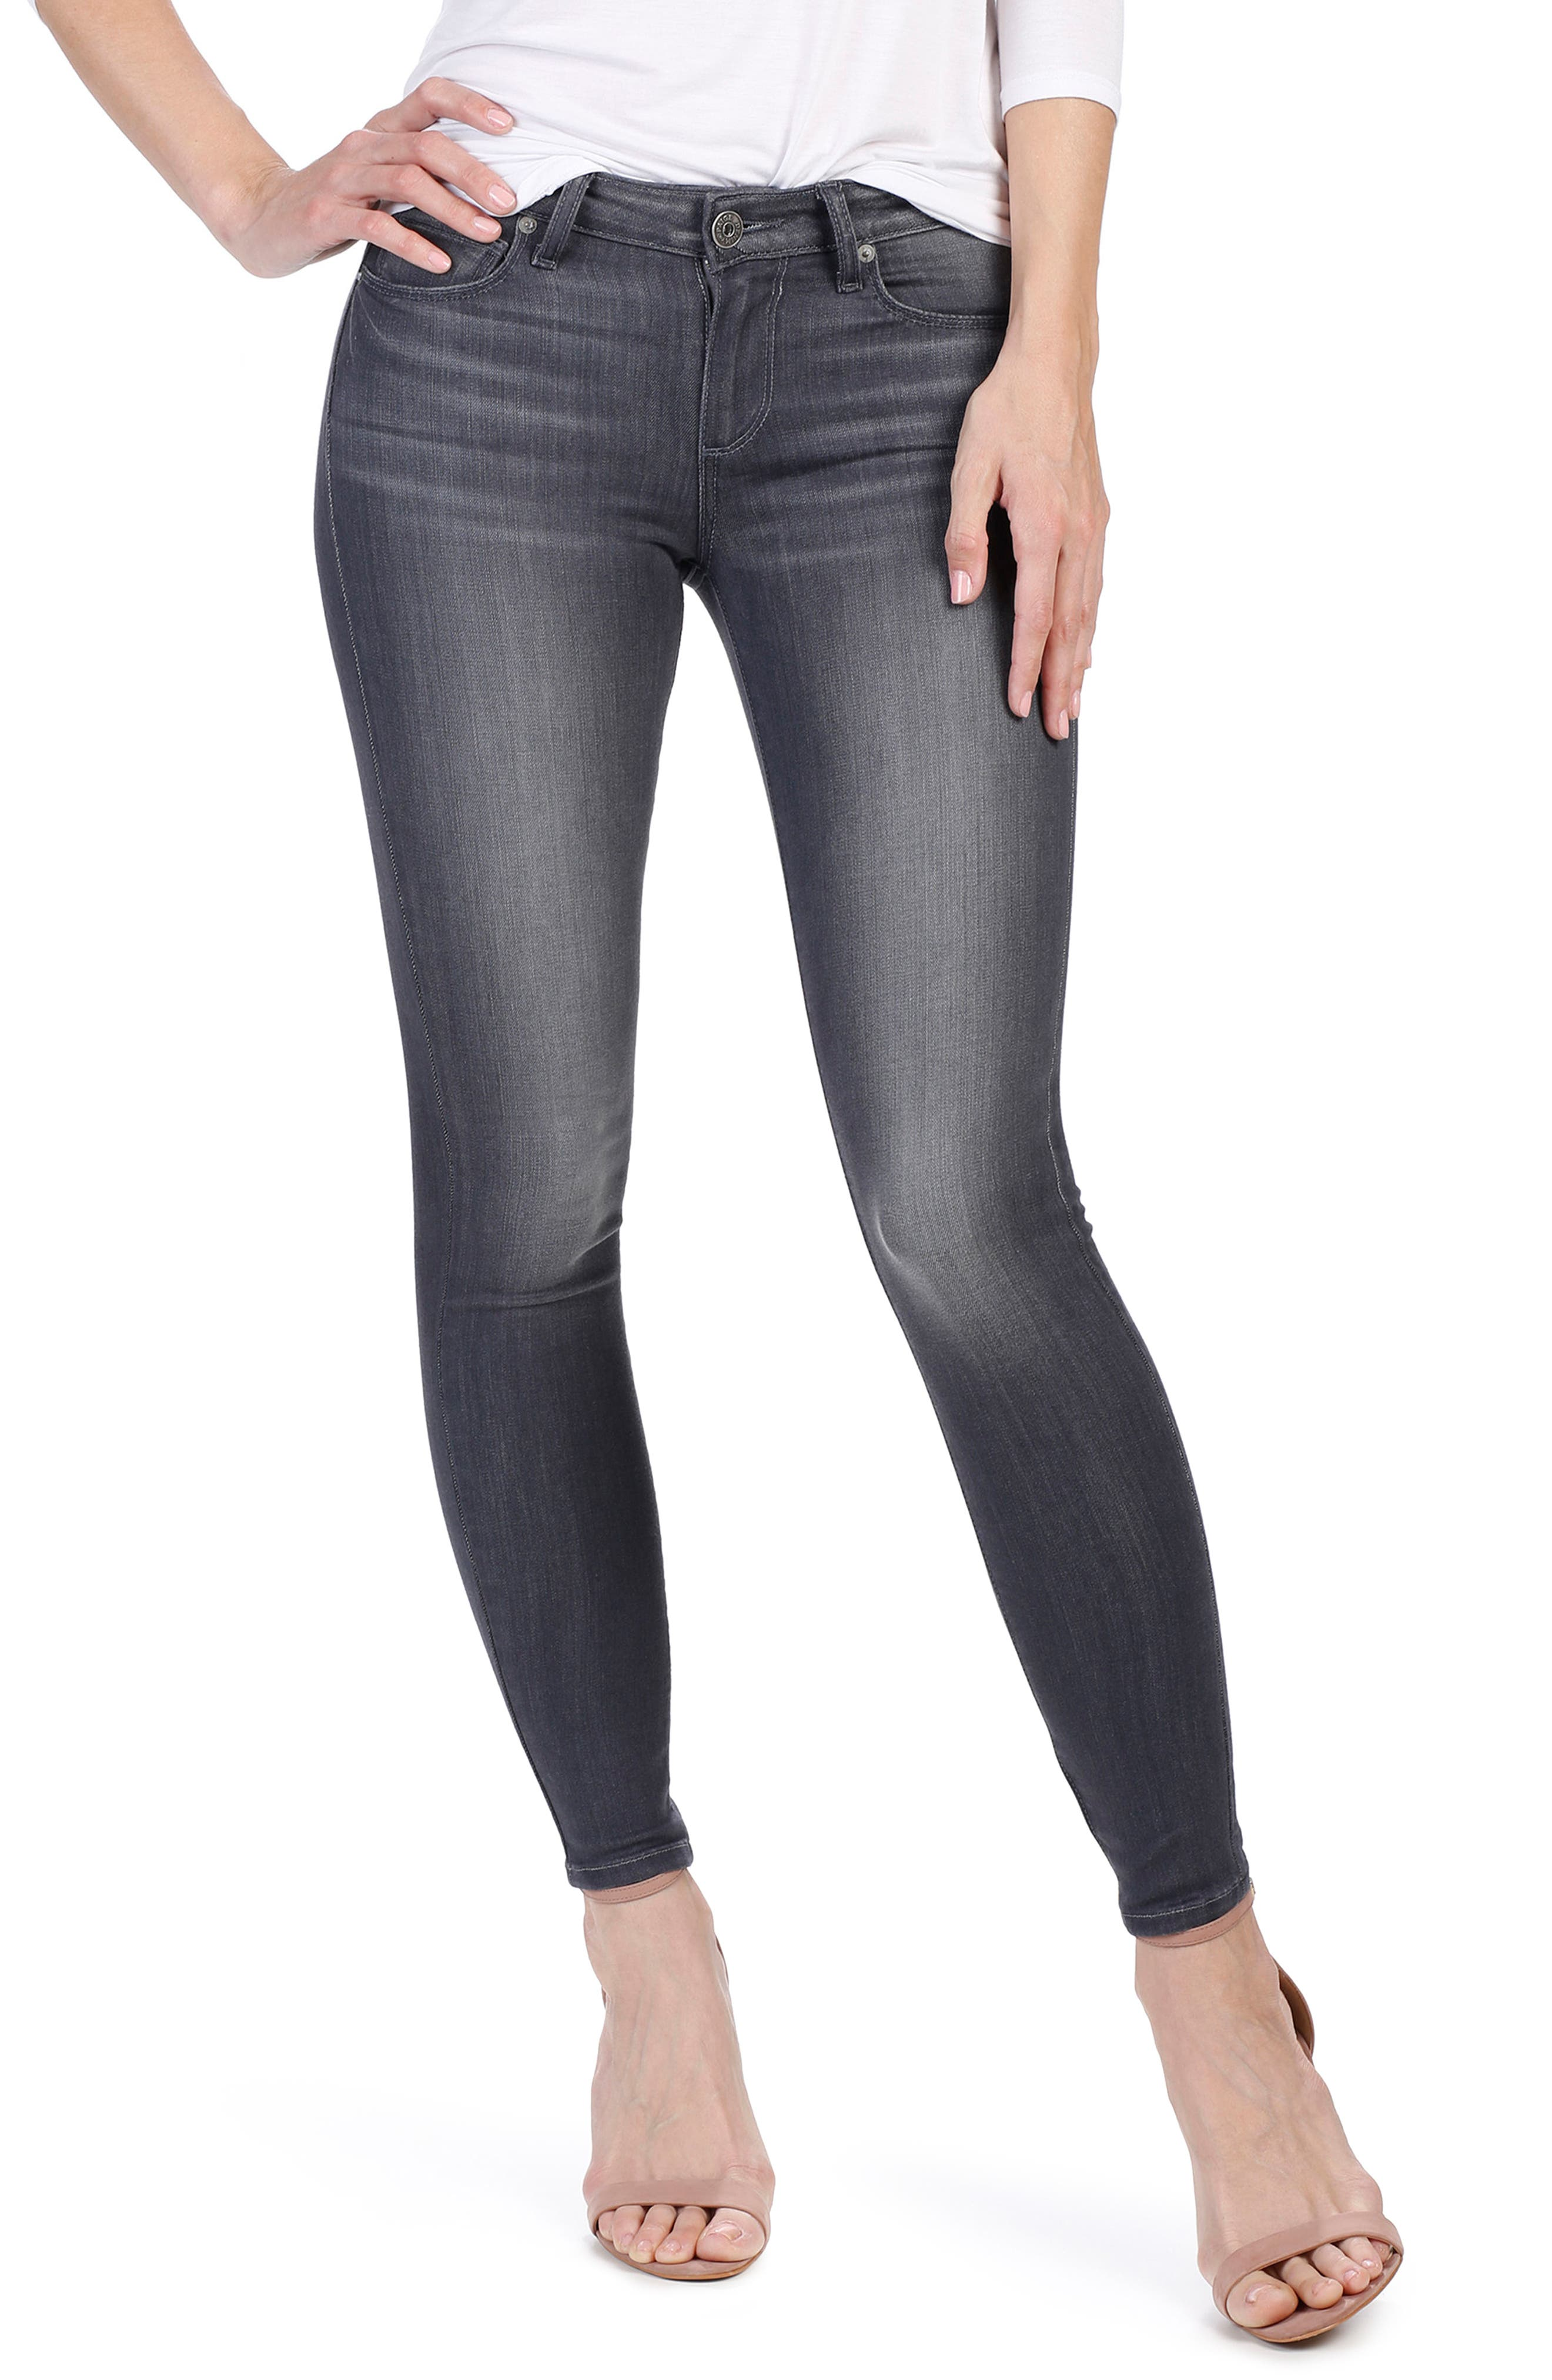 Main Image - PAIGE Transcend - Verdugo Ankle Skinny Jeans (Summit Grey)